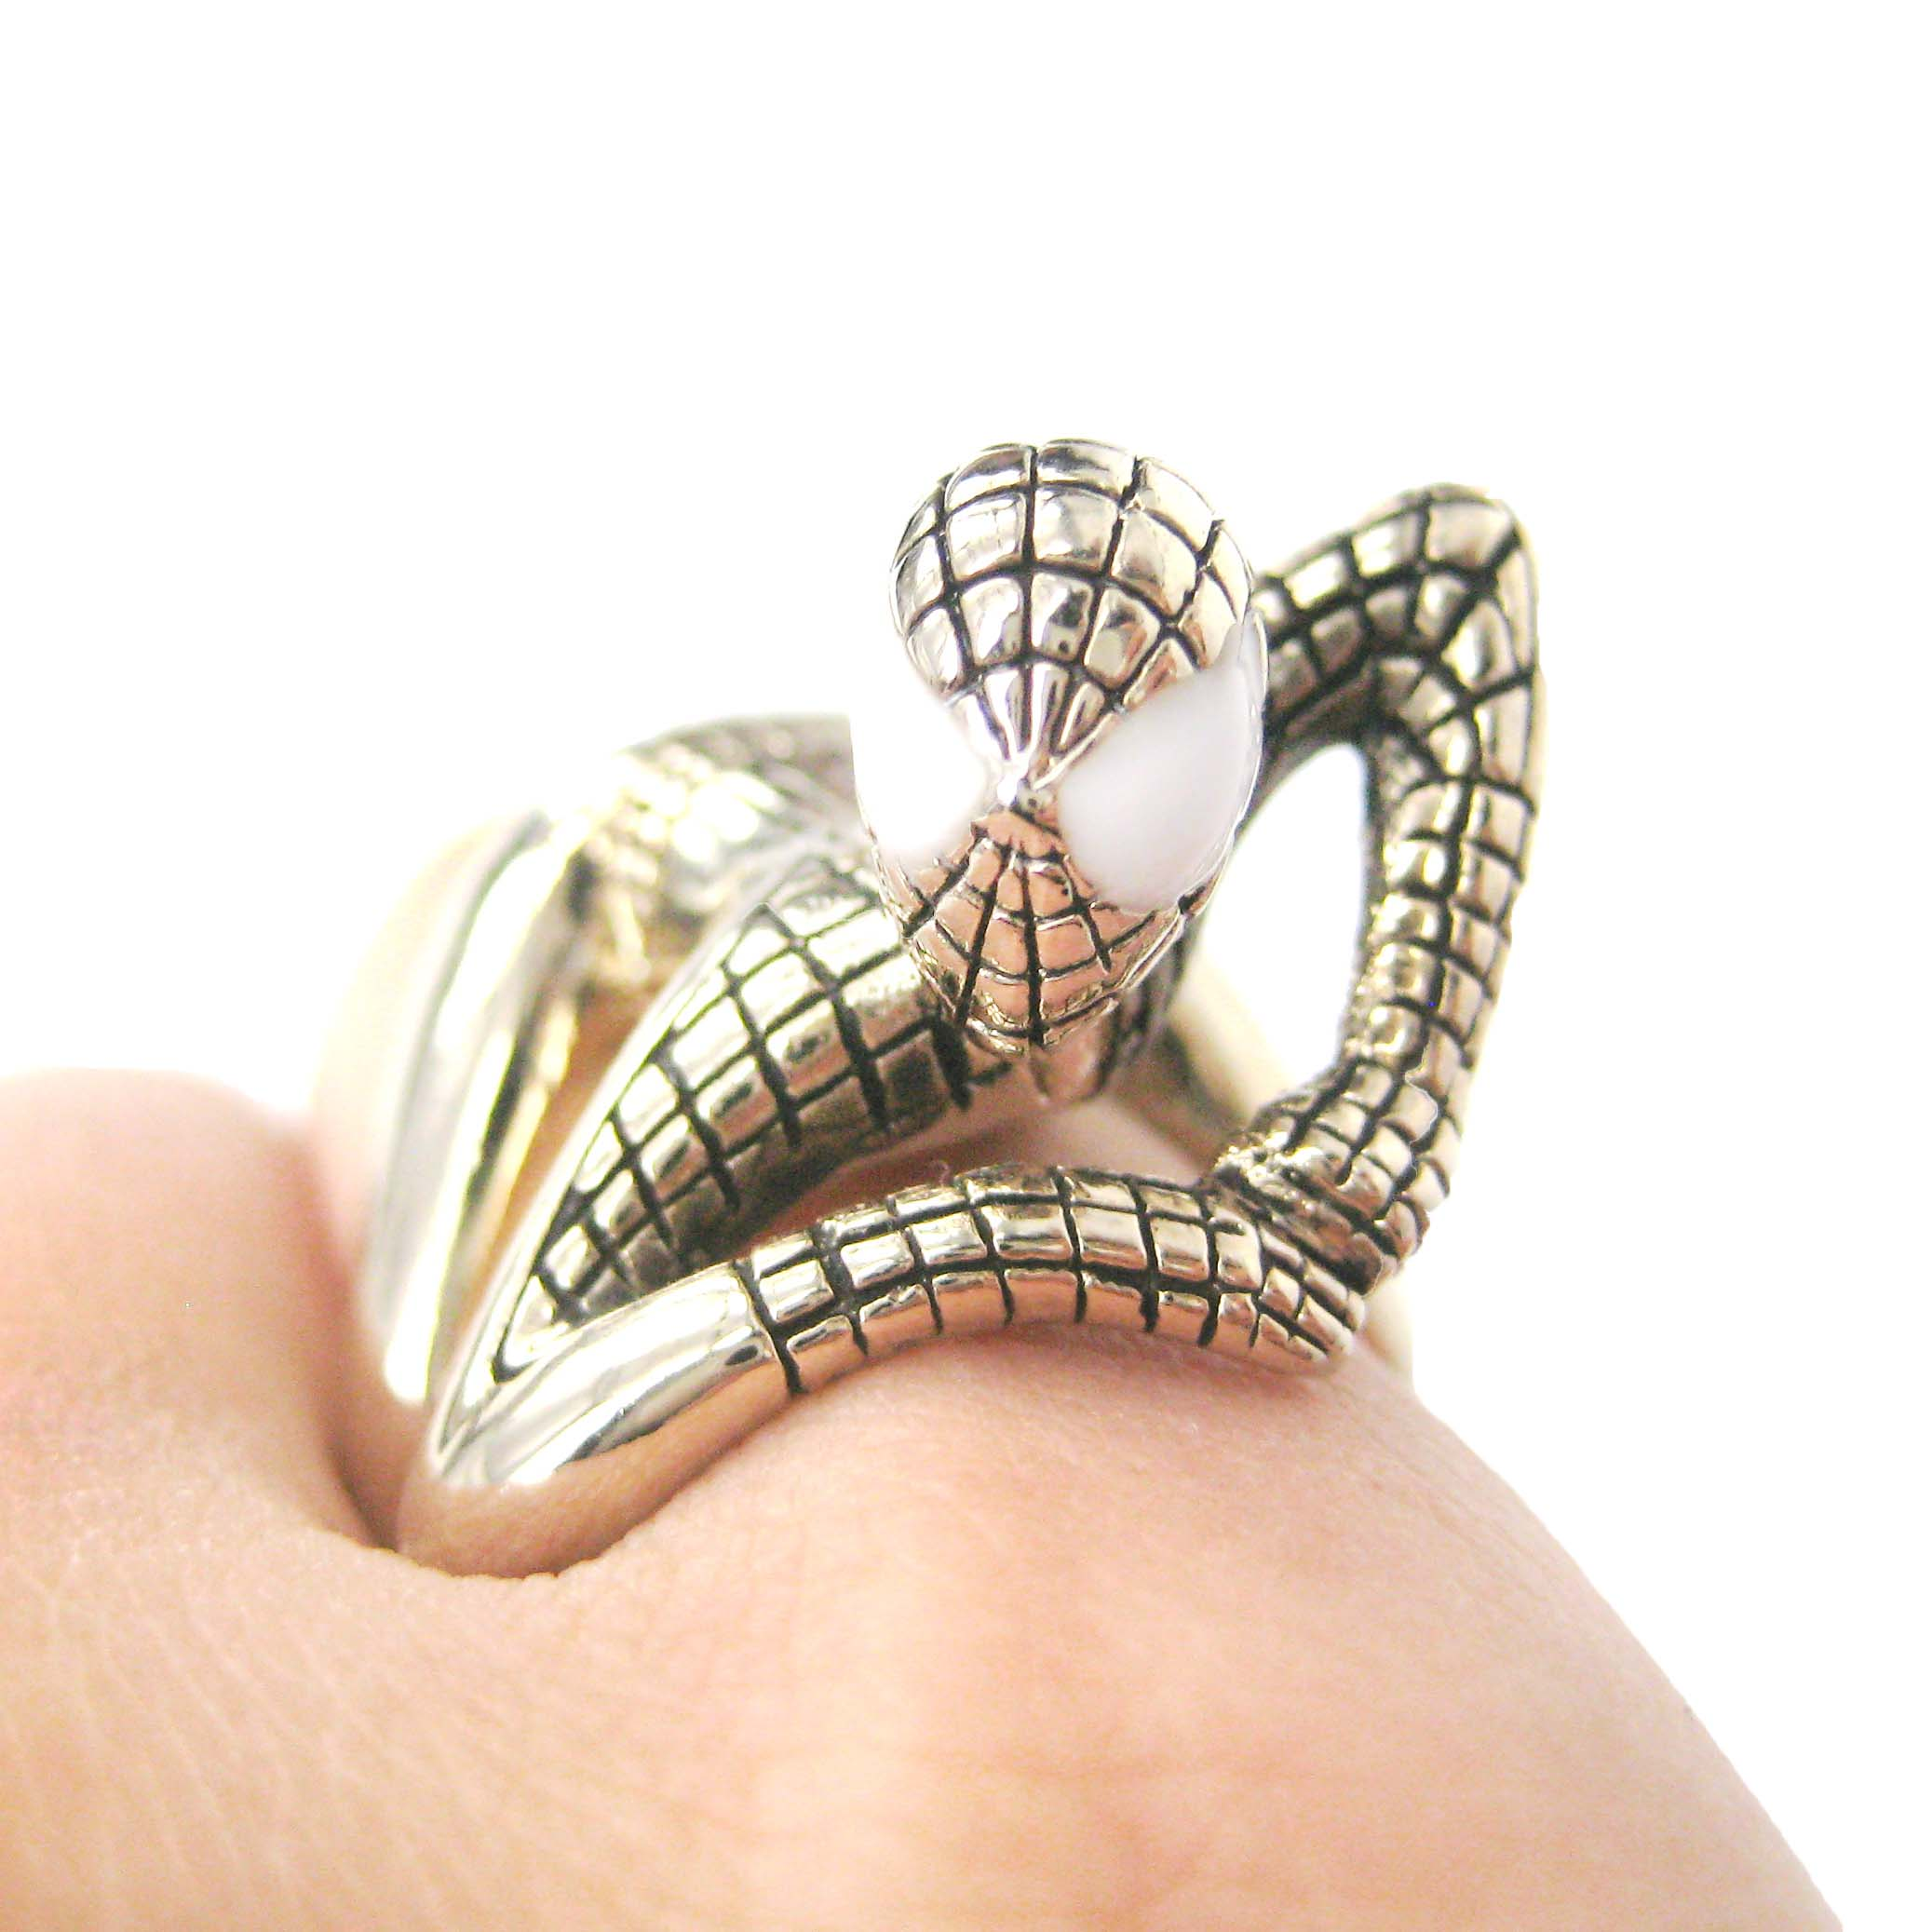 Spiderman Shaped Wrap Around Ring in Shiny Gold US Size 8 and 9